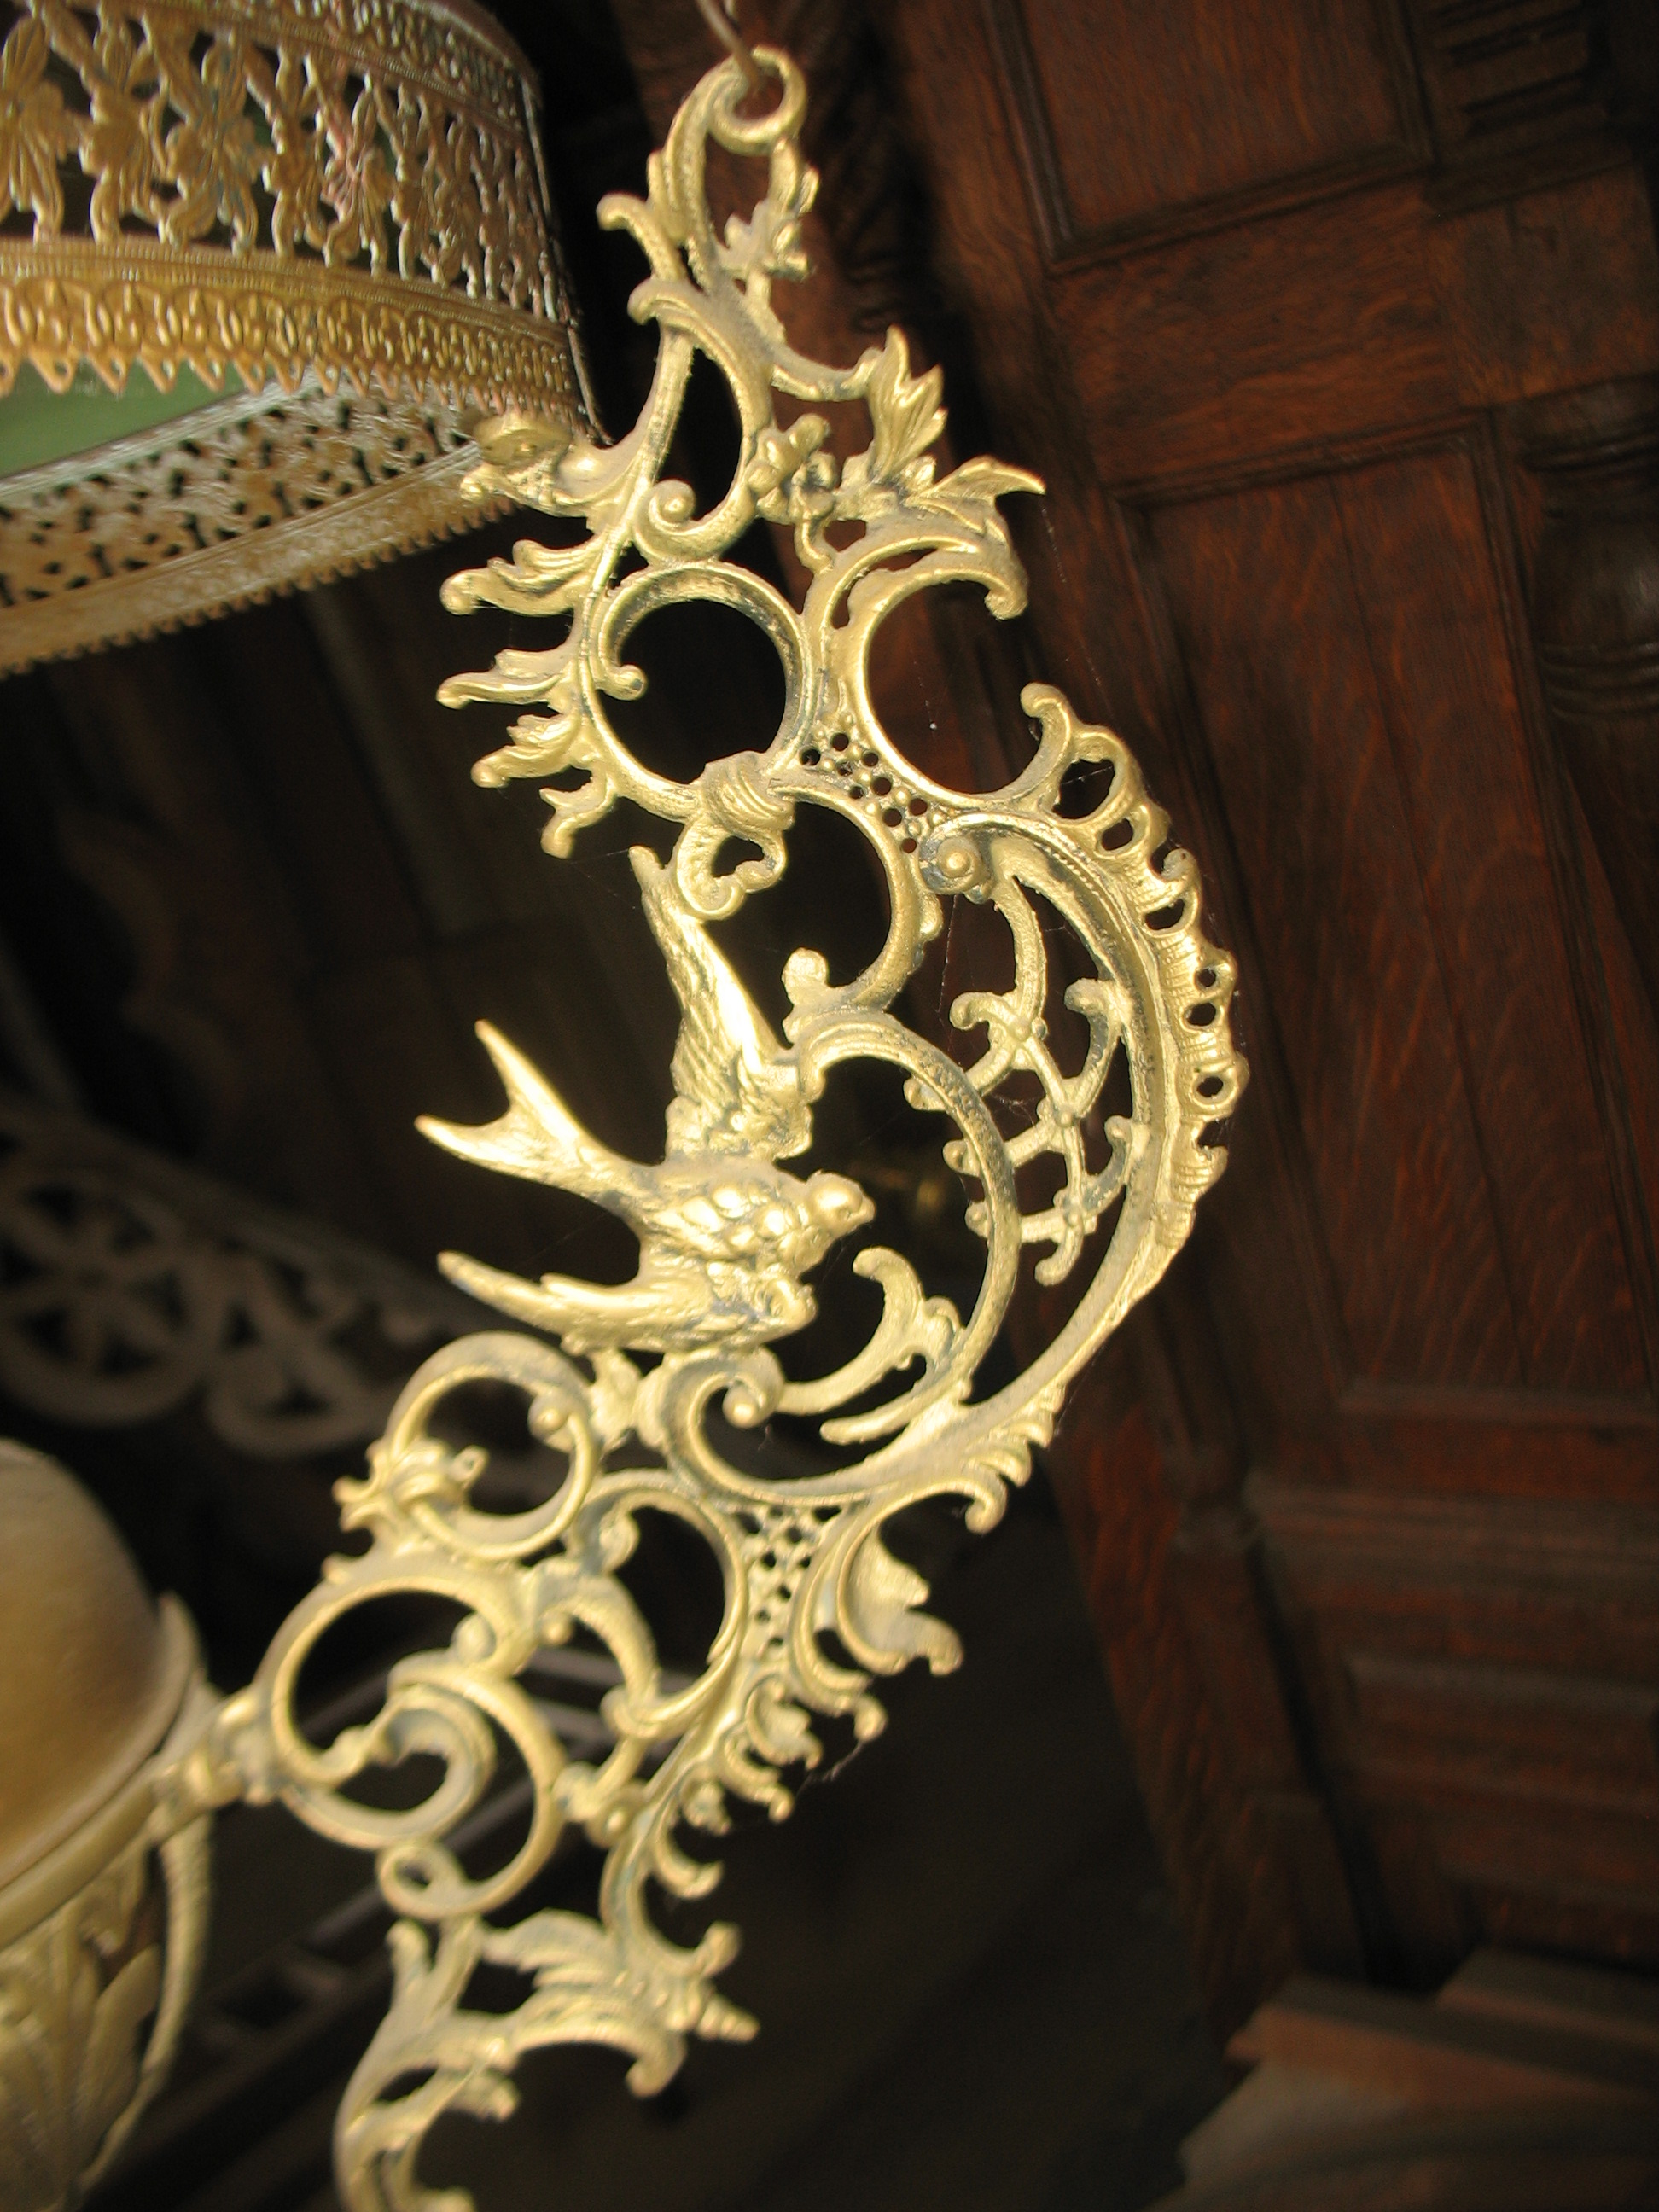 THIS SHOWS A CLOSE UP OF THE BEAUTY OF THE SWALLOWS IN THE LIGHT FIXTURE